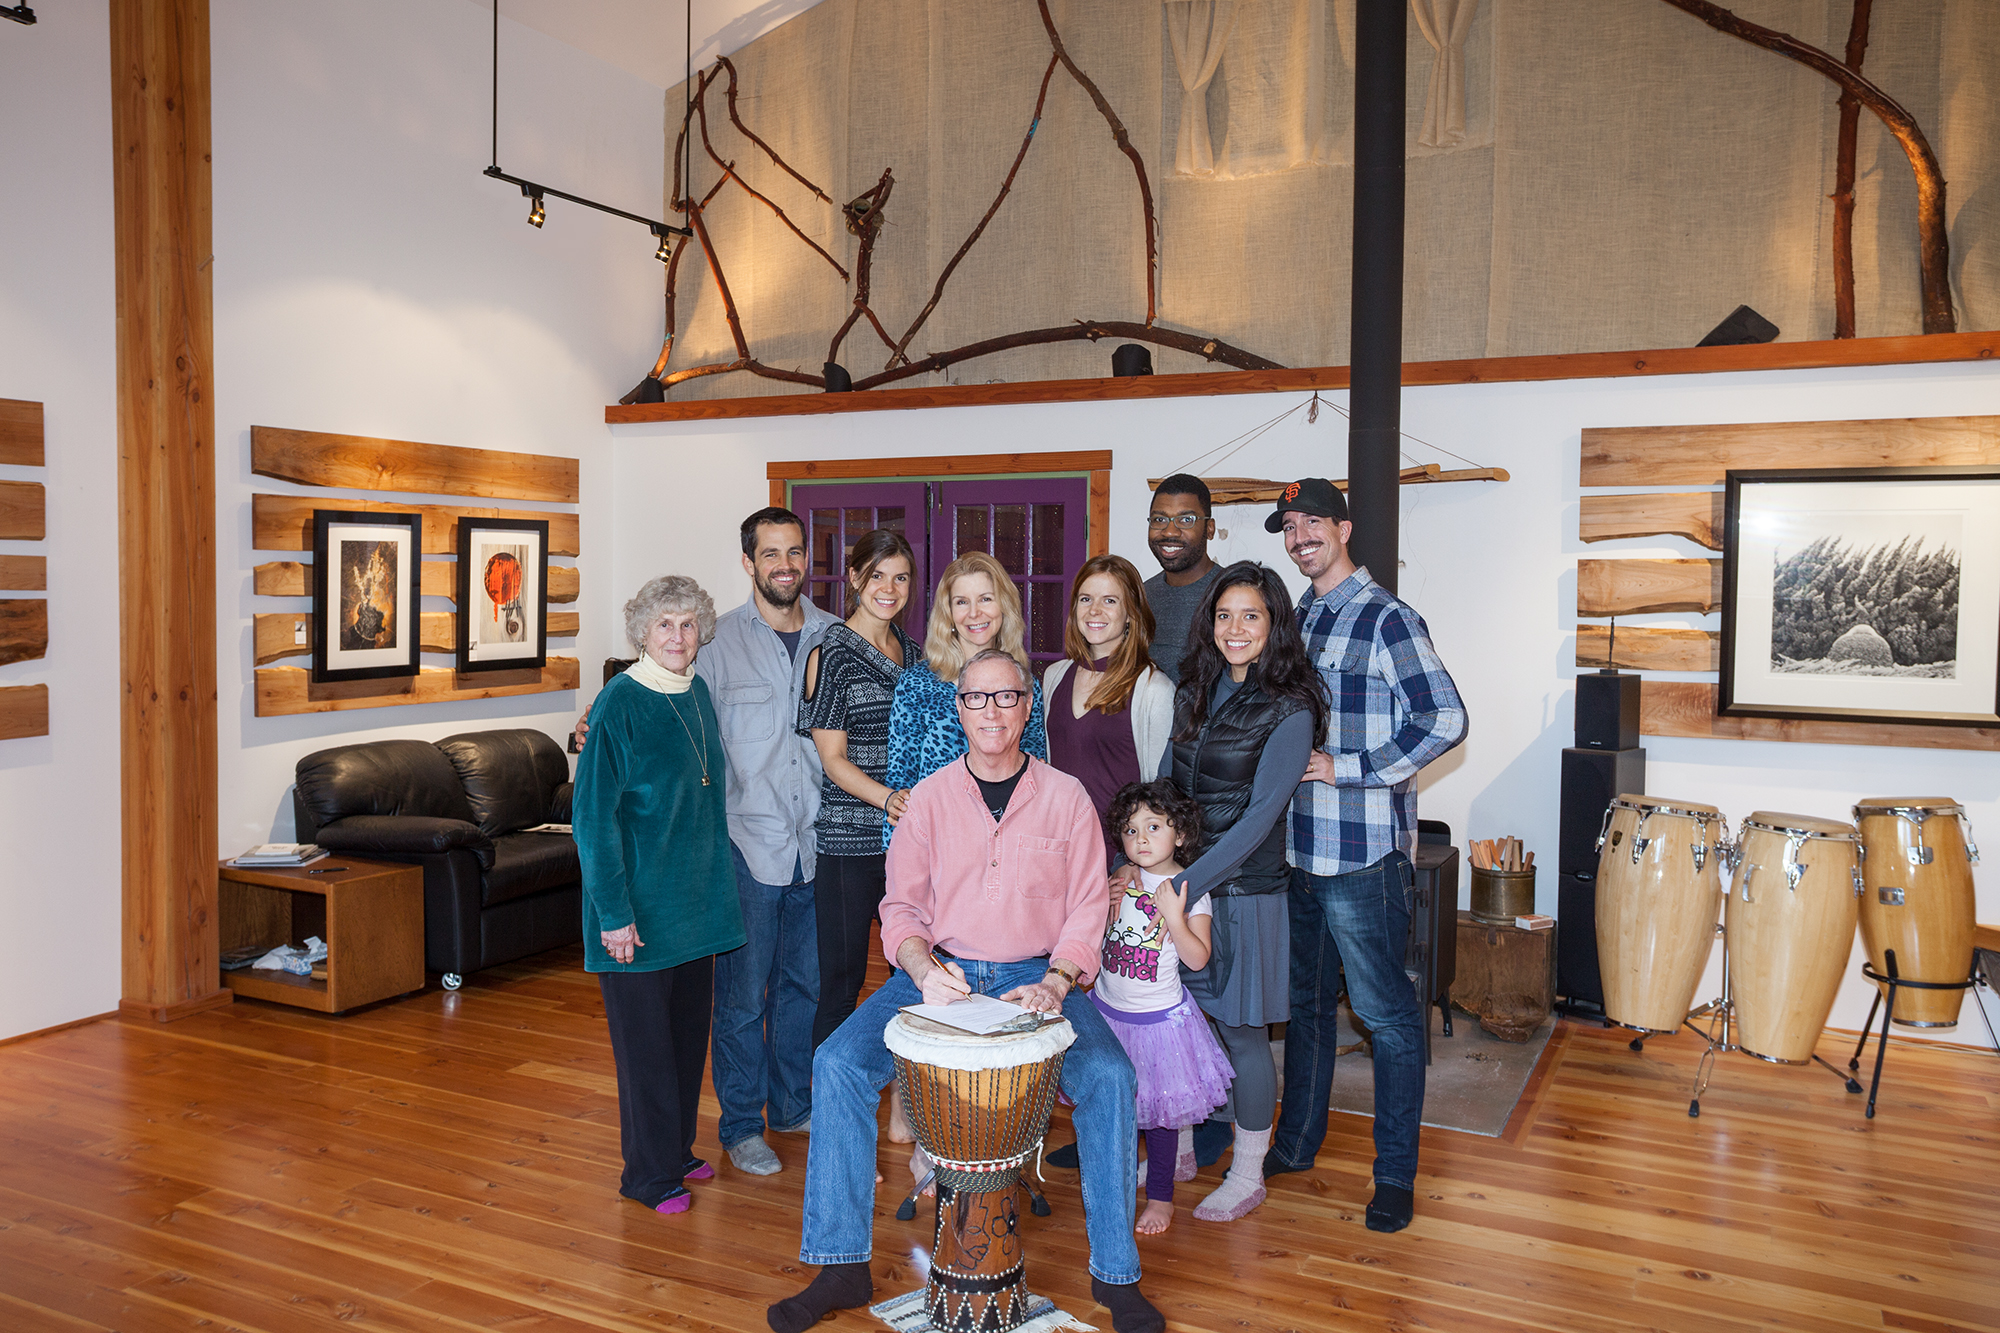 Signing the contract in the studio with family on Thanksgiving Day, 2016. L to R, Jojo, Gabe, Emily, Lea, Juliana, Cliff, Ina, Felsha and Jon.